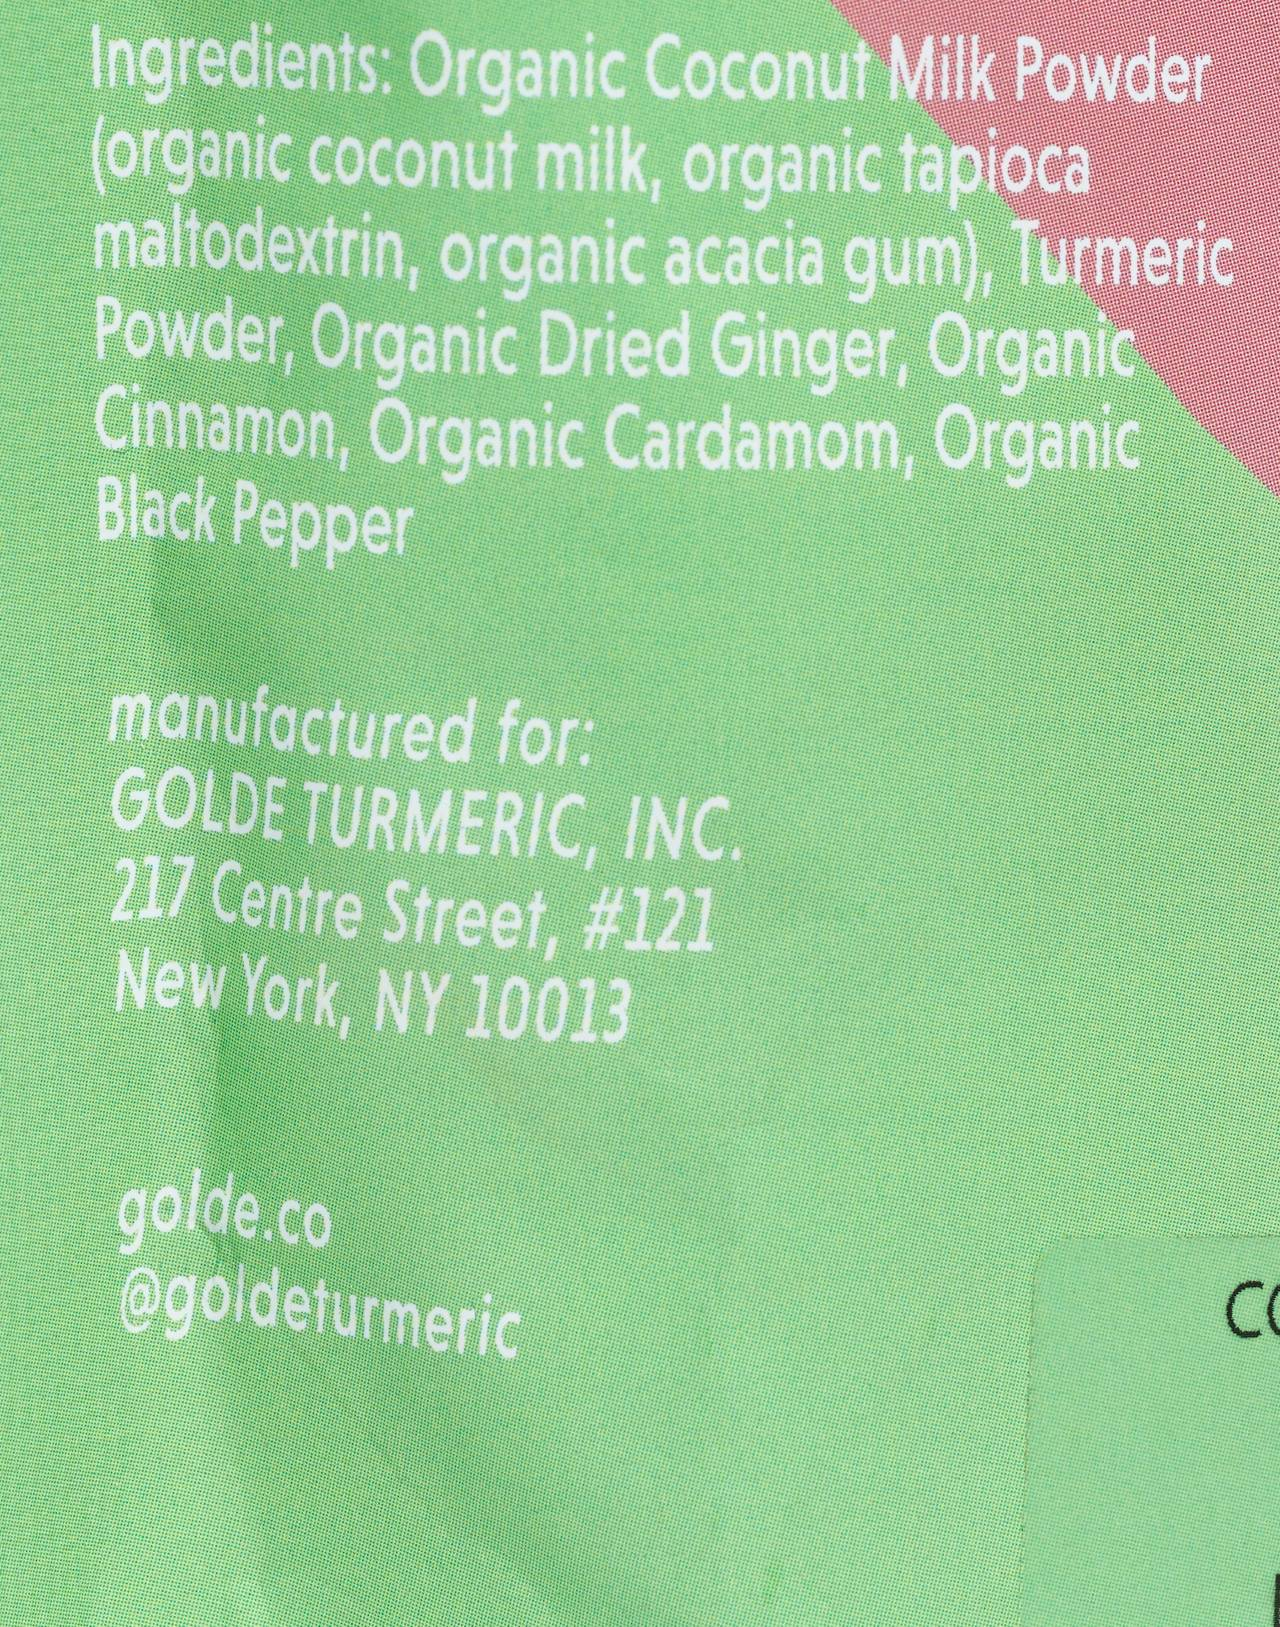 Golde™ Original Turmeric Tonic Blend in original image 2